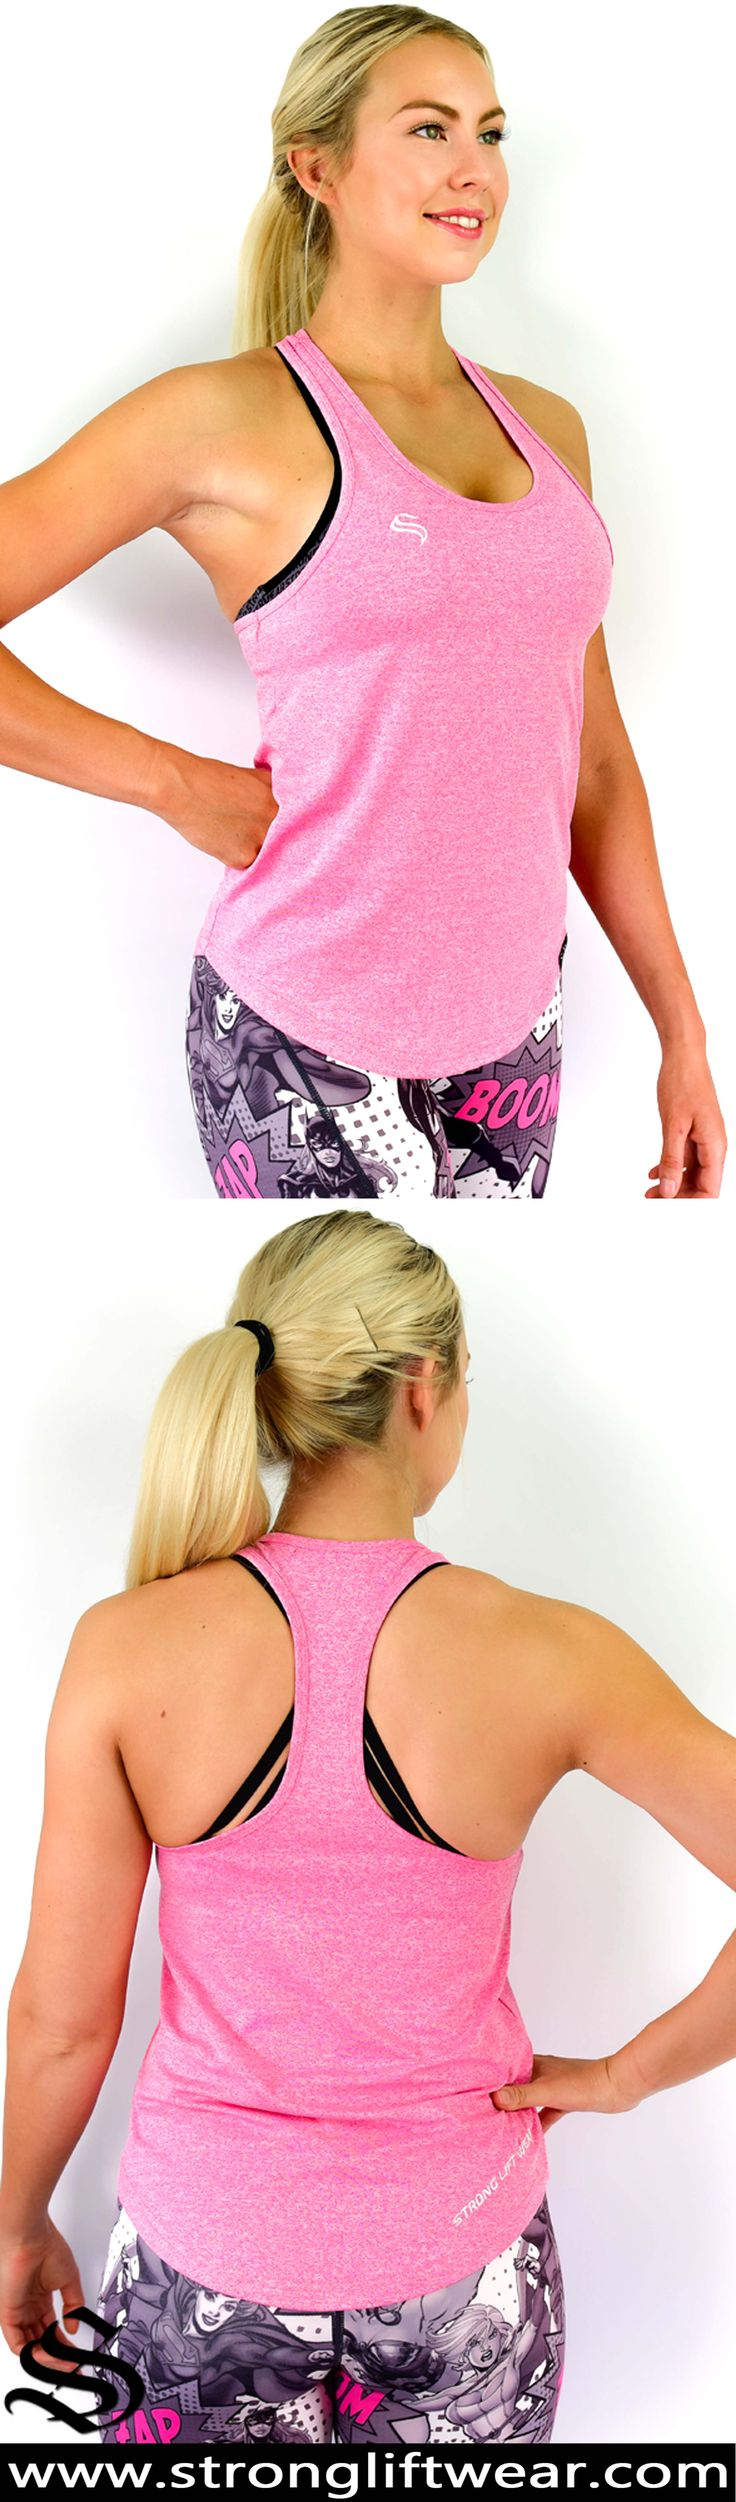 FreeFlex Racerback - Pink │gym wear │fitness wear │fitness clothing │fitness │outfits │workout dress │gym outfits │workout outfits │singlets │pants #gymwear #fitnesswear #fitnessclothing #fitness #outfits #workoutdress #gymoutfits #workoutoutfits #singlets #pants